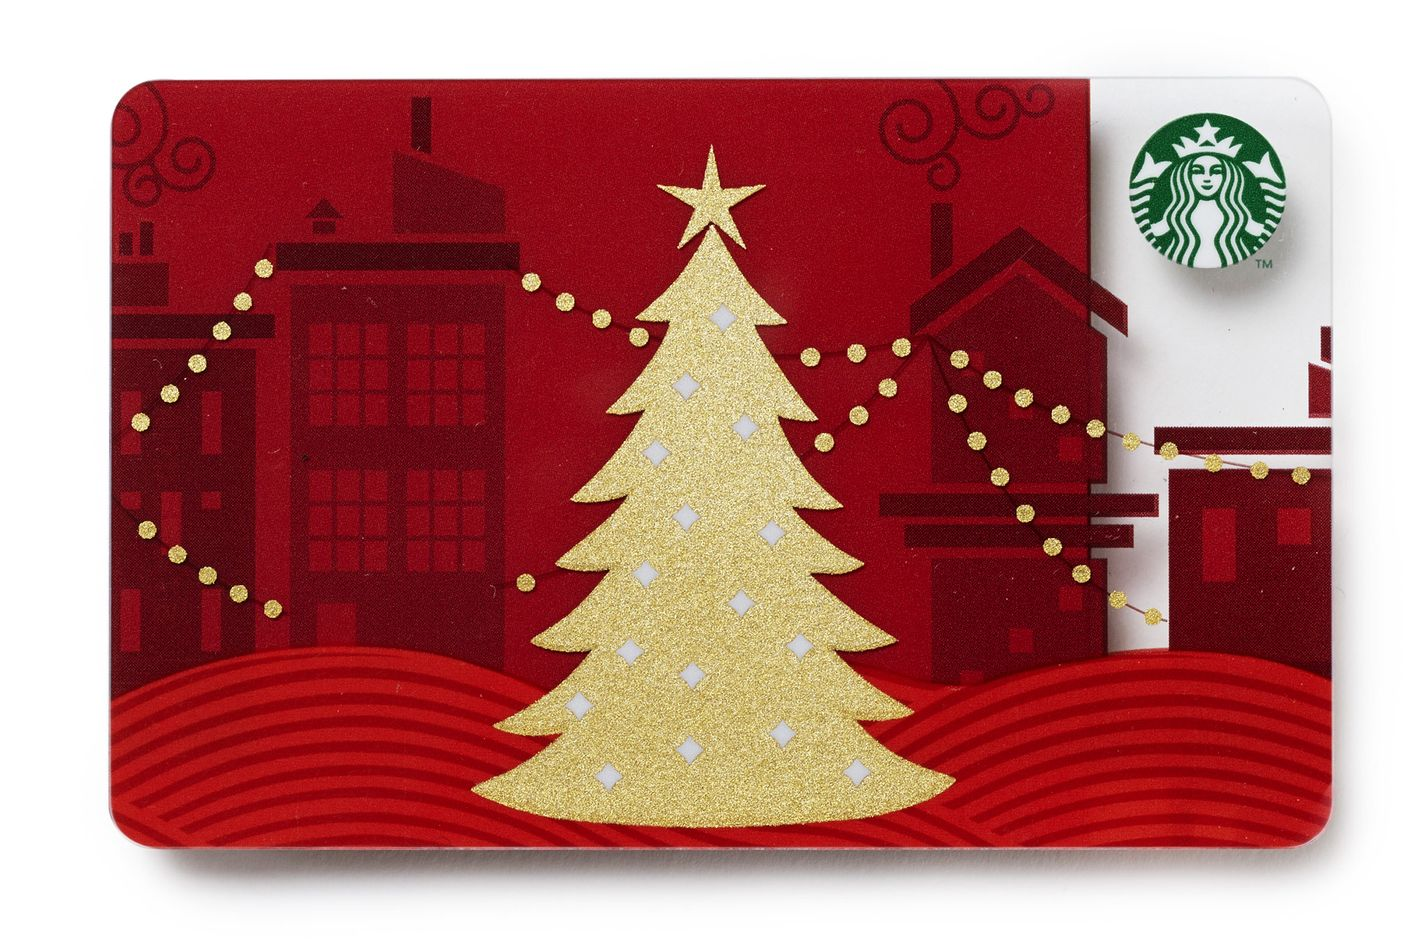 desperate shoppers will buy 2 million starbucks gift cards on christmas eve